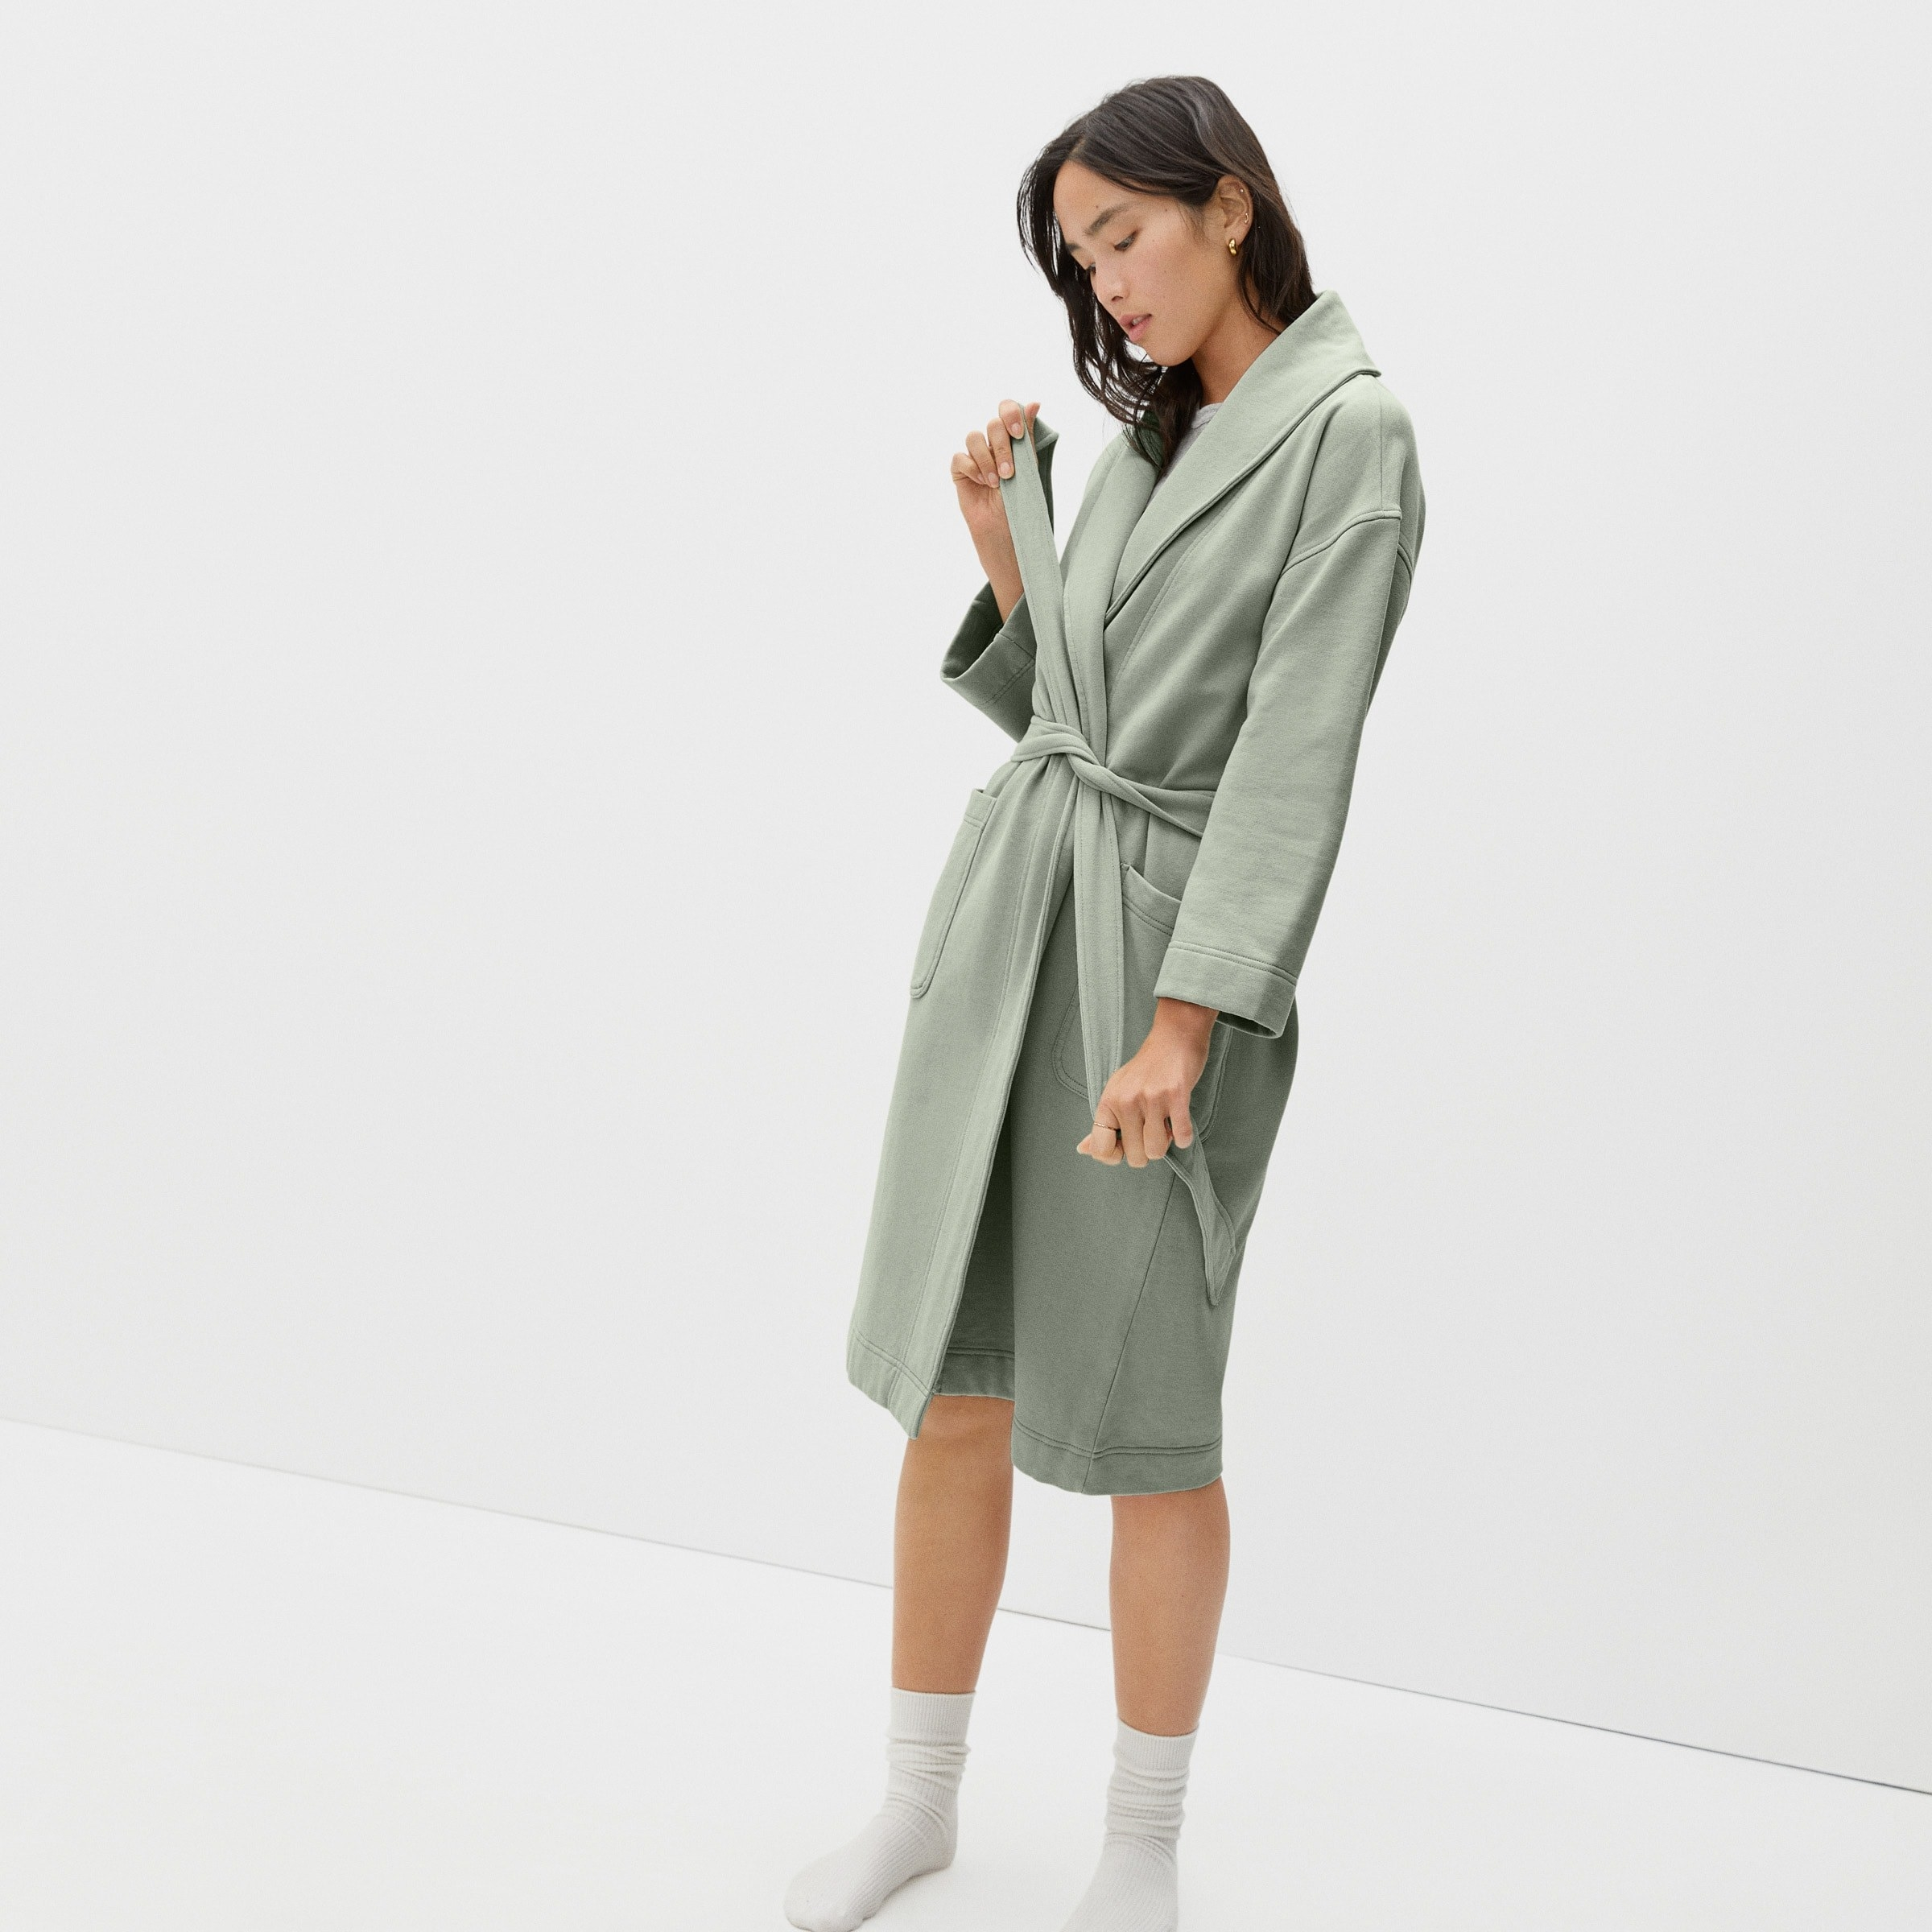 a model in a green terry robe